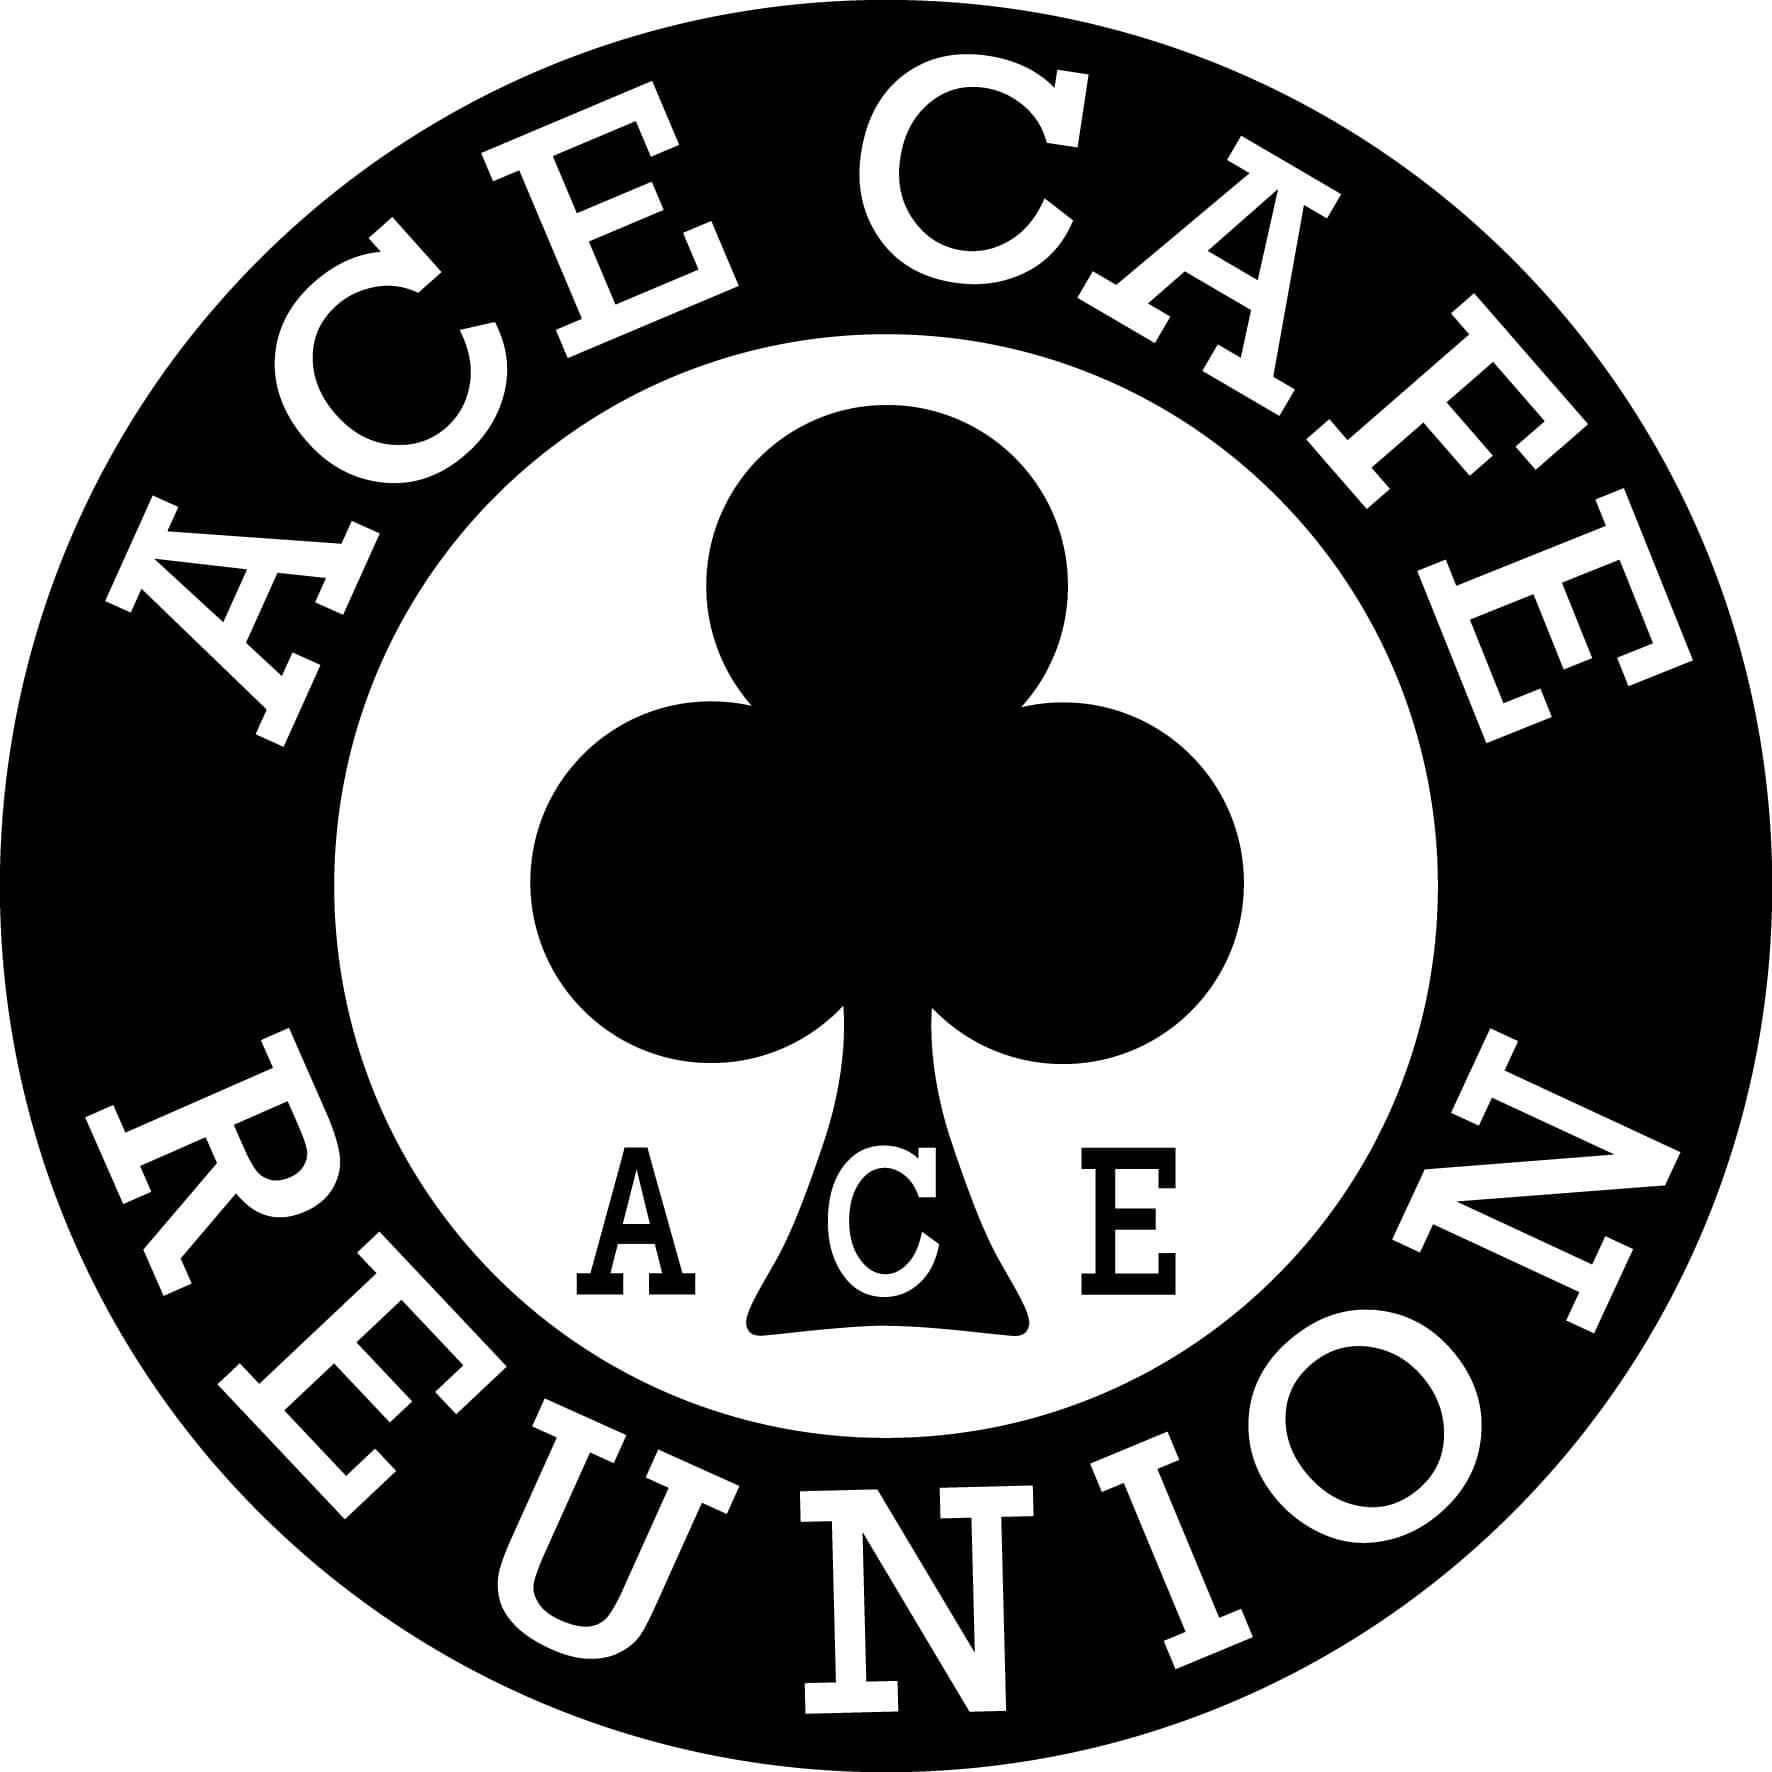 The 24th annual Ace Cafe Reun